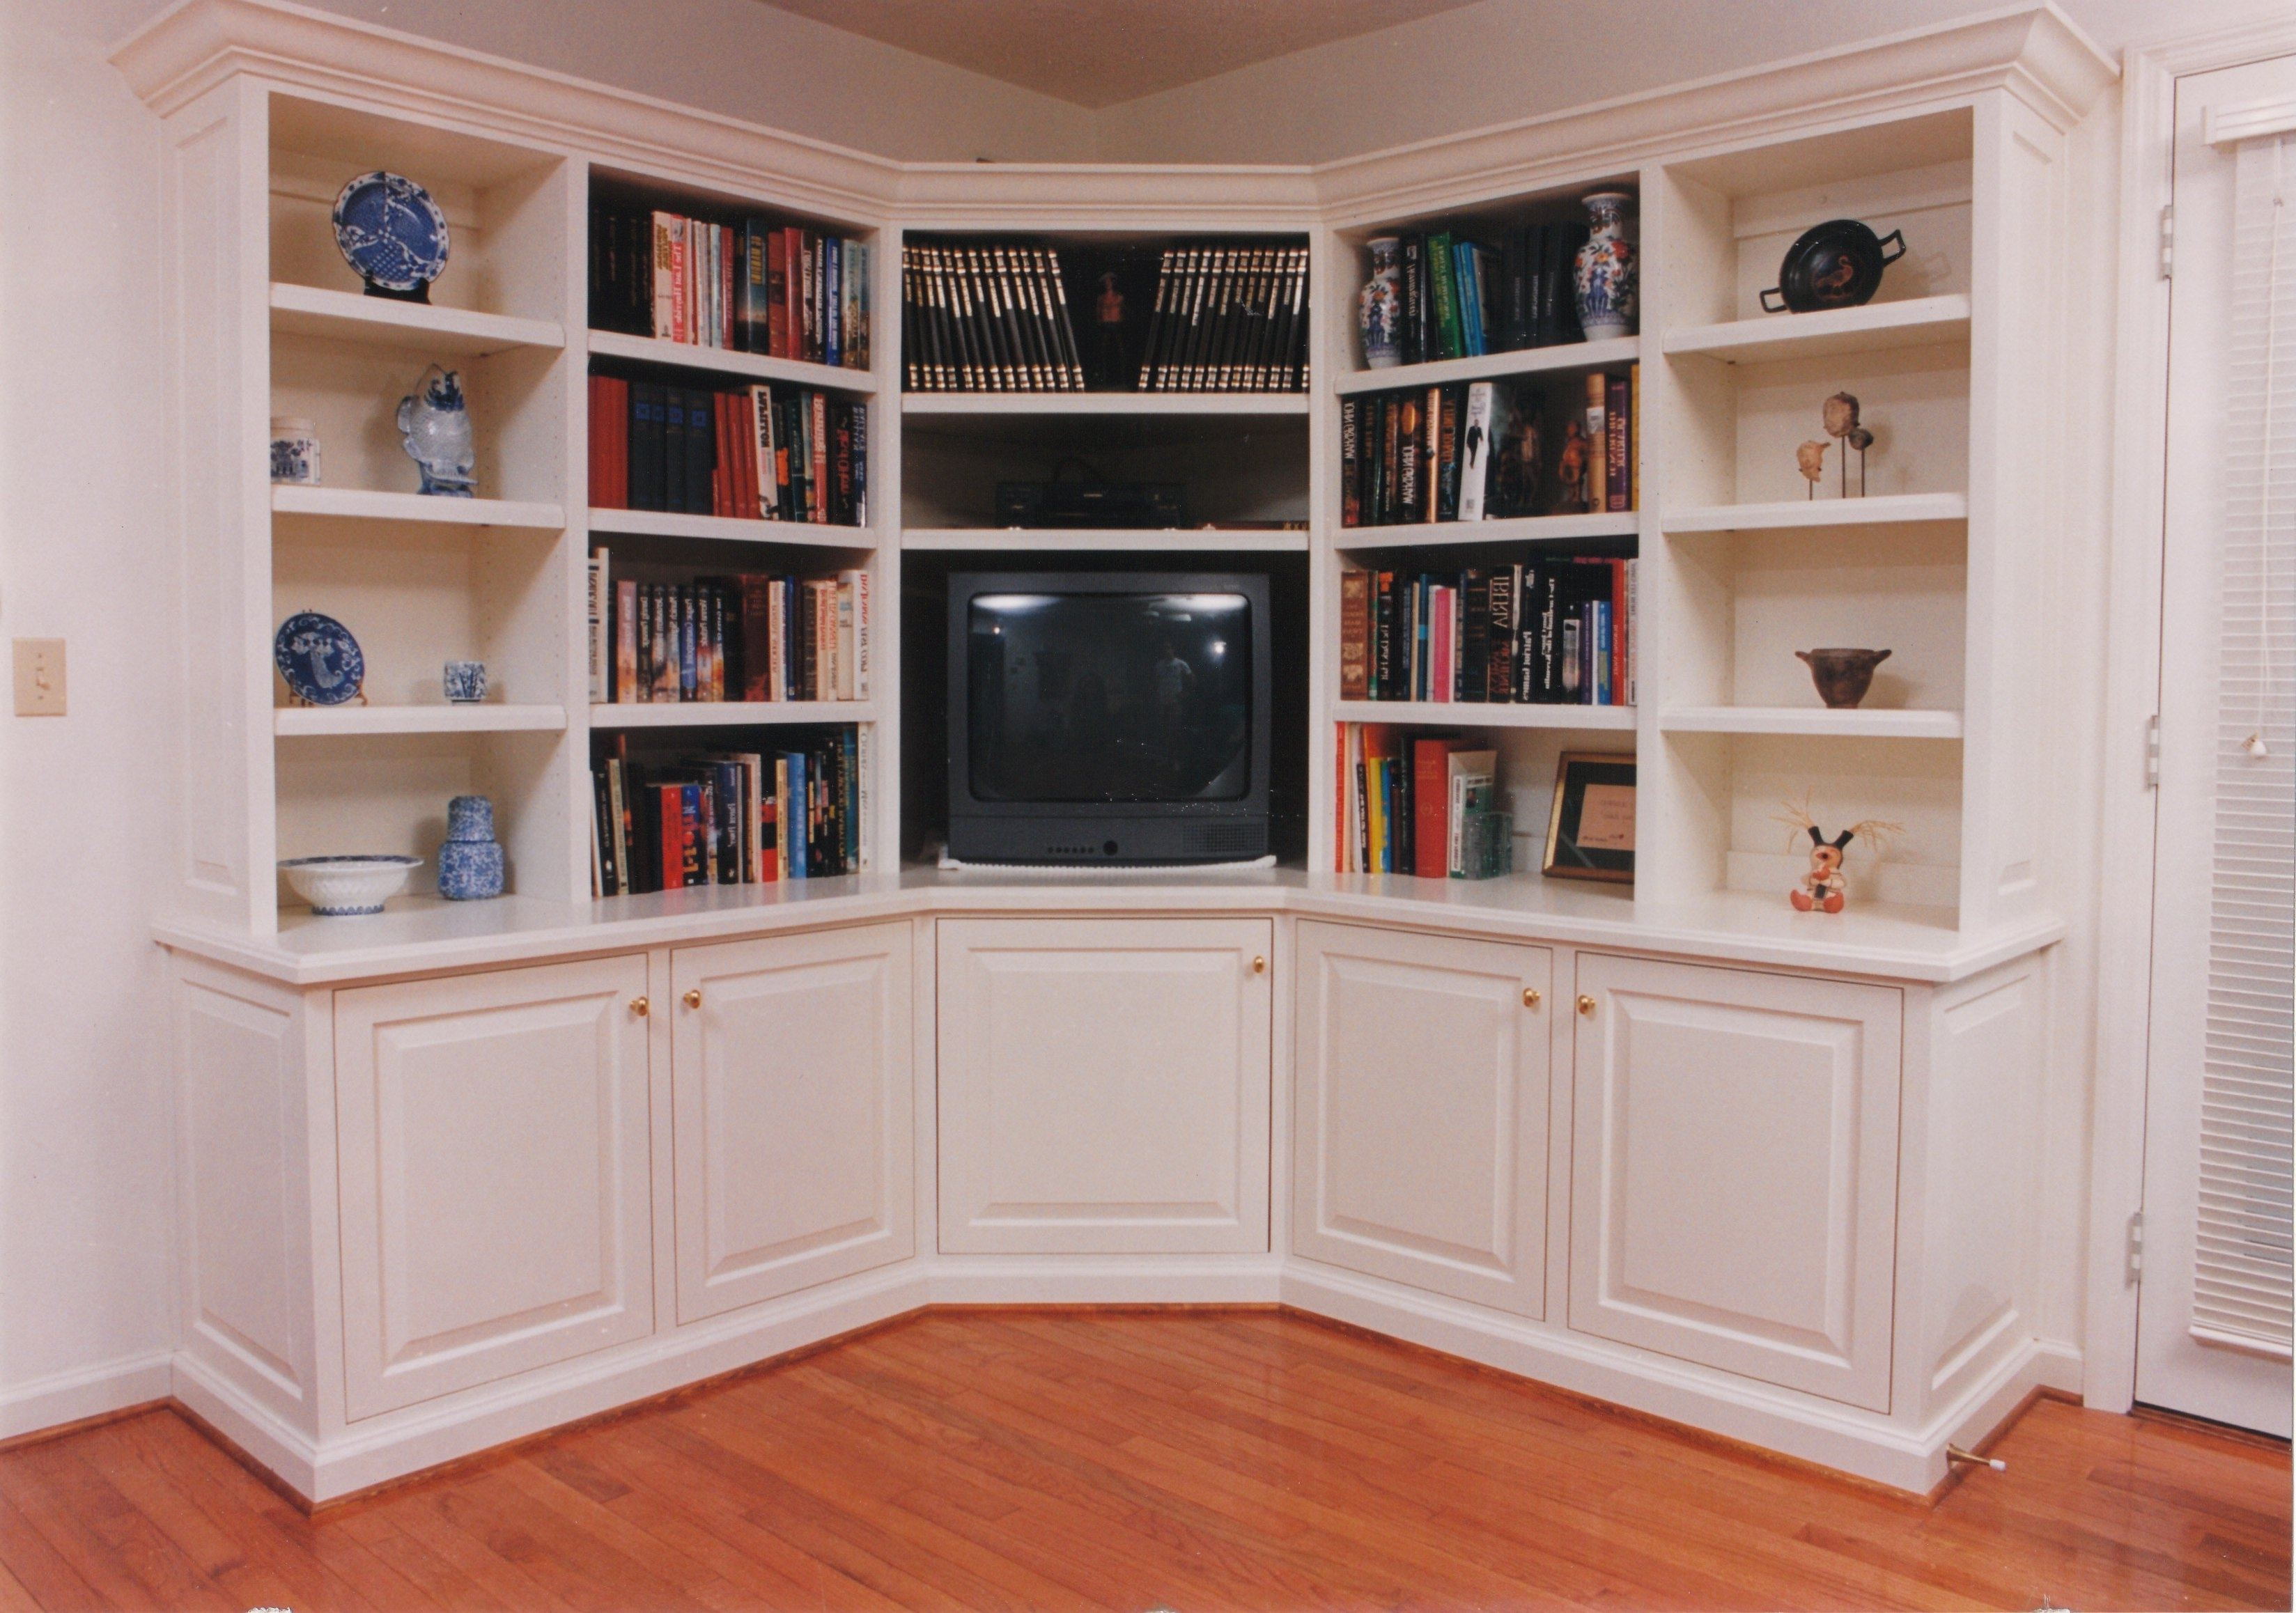 Wildon Home Bookcases Intended For Well Known Bookcase Small Corner Unit Wall Furniturewildon Home Wooden (View 14 of 15)